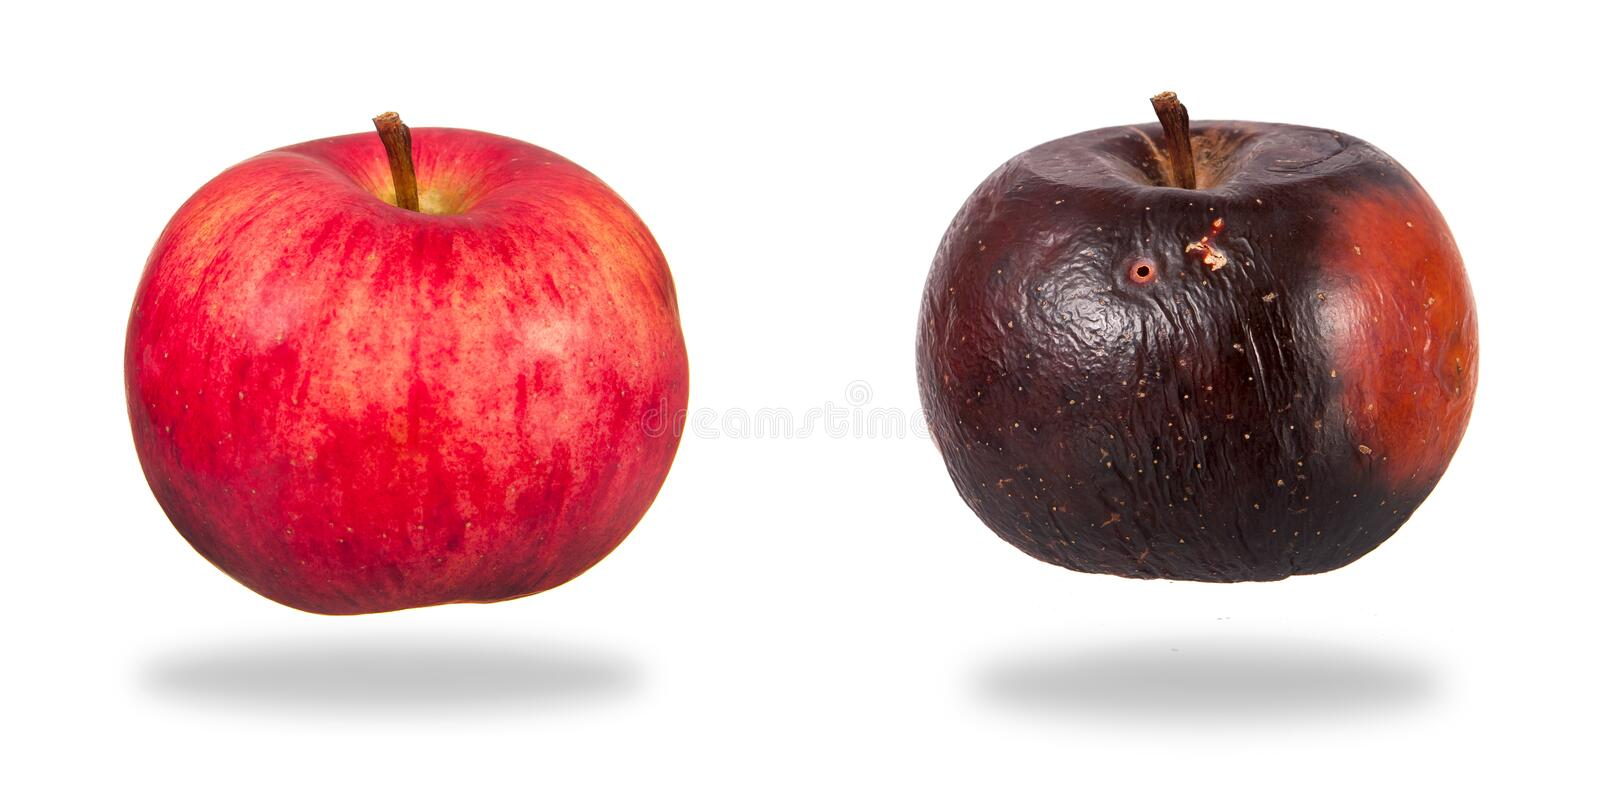 Red and rotten apples. Two apples, red and rotten over white background royalty free stock photo